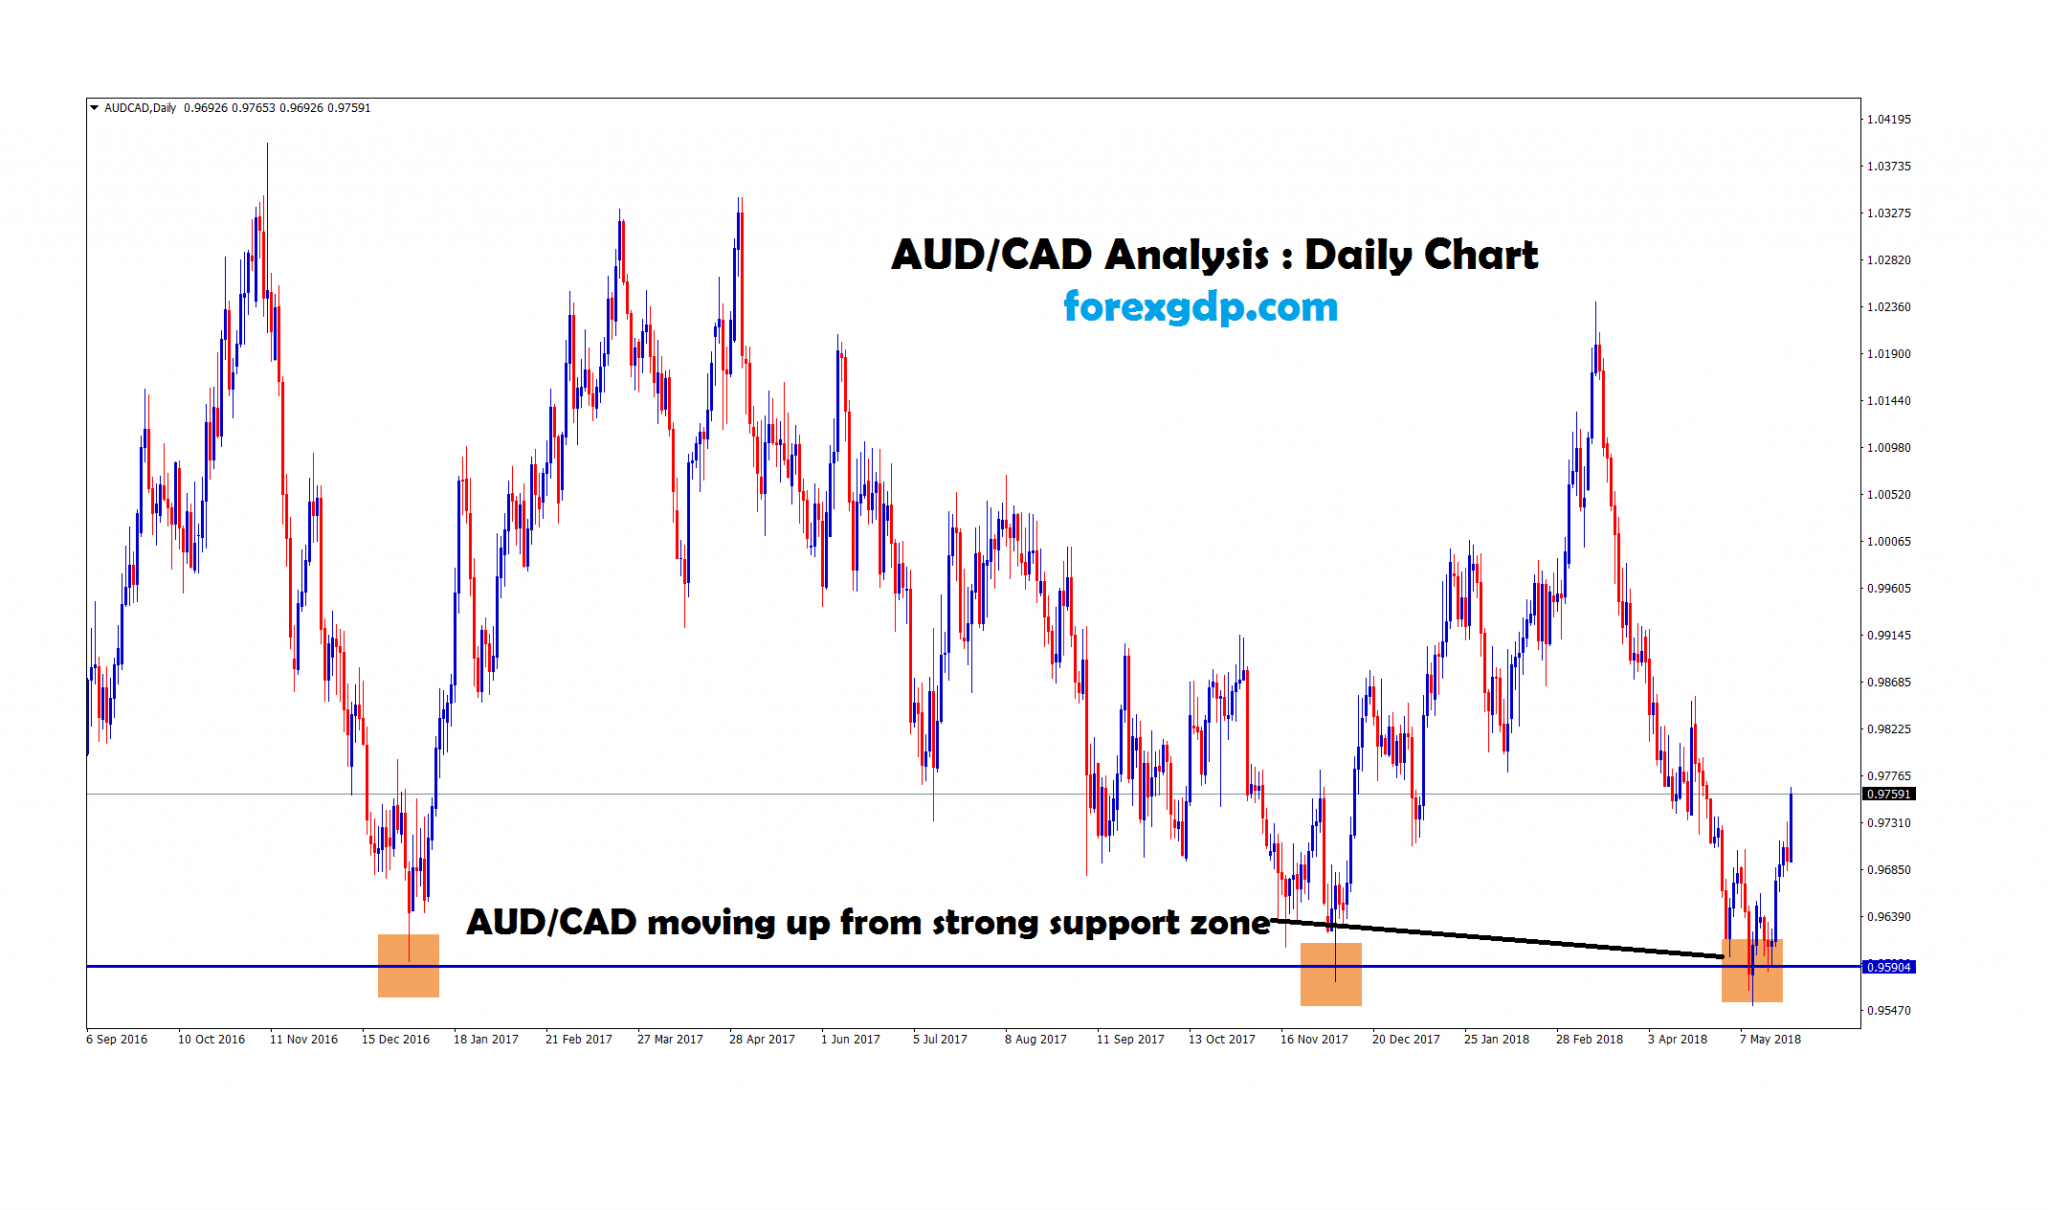 aud cad moving up from strong support zone